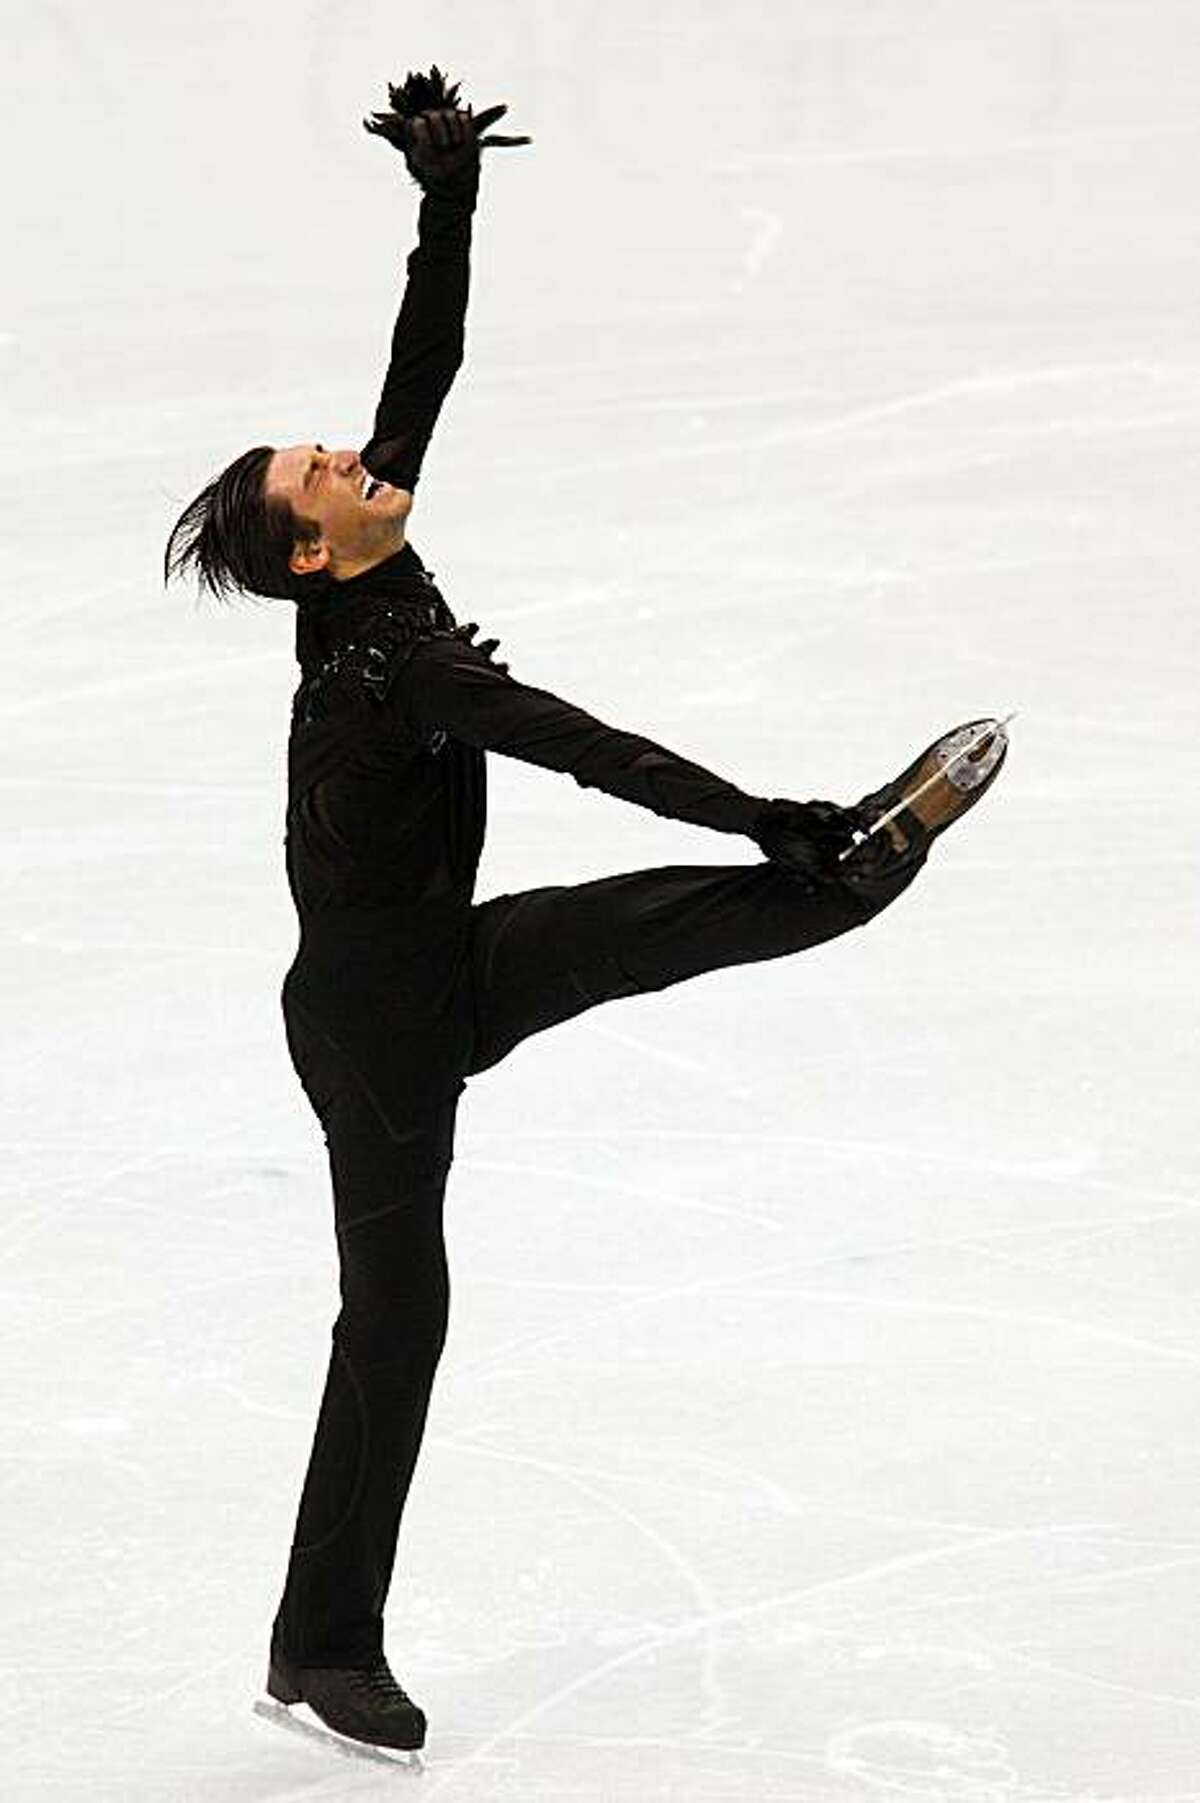 Evan Lysacek of the USA performs his short program during men's figure skating at the 2010 Winter Olympics on Tuesday, Feb. 16, 2010, in Vancouver. ( Smiley N. Pool / Houston Chronicle )Evan Lysacek of the USA performs his short program during men's figure skating at the 2010 Winter Olympics on Tuesday, Feb. 16, 2010, in Vancouver.